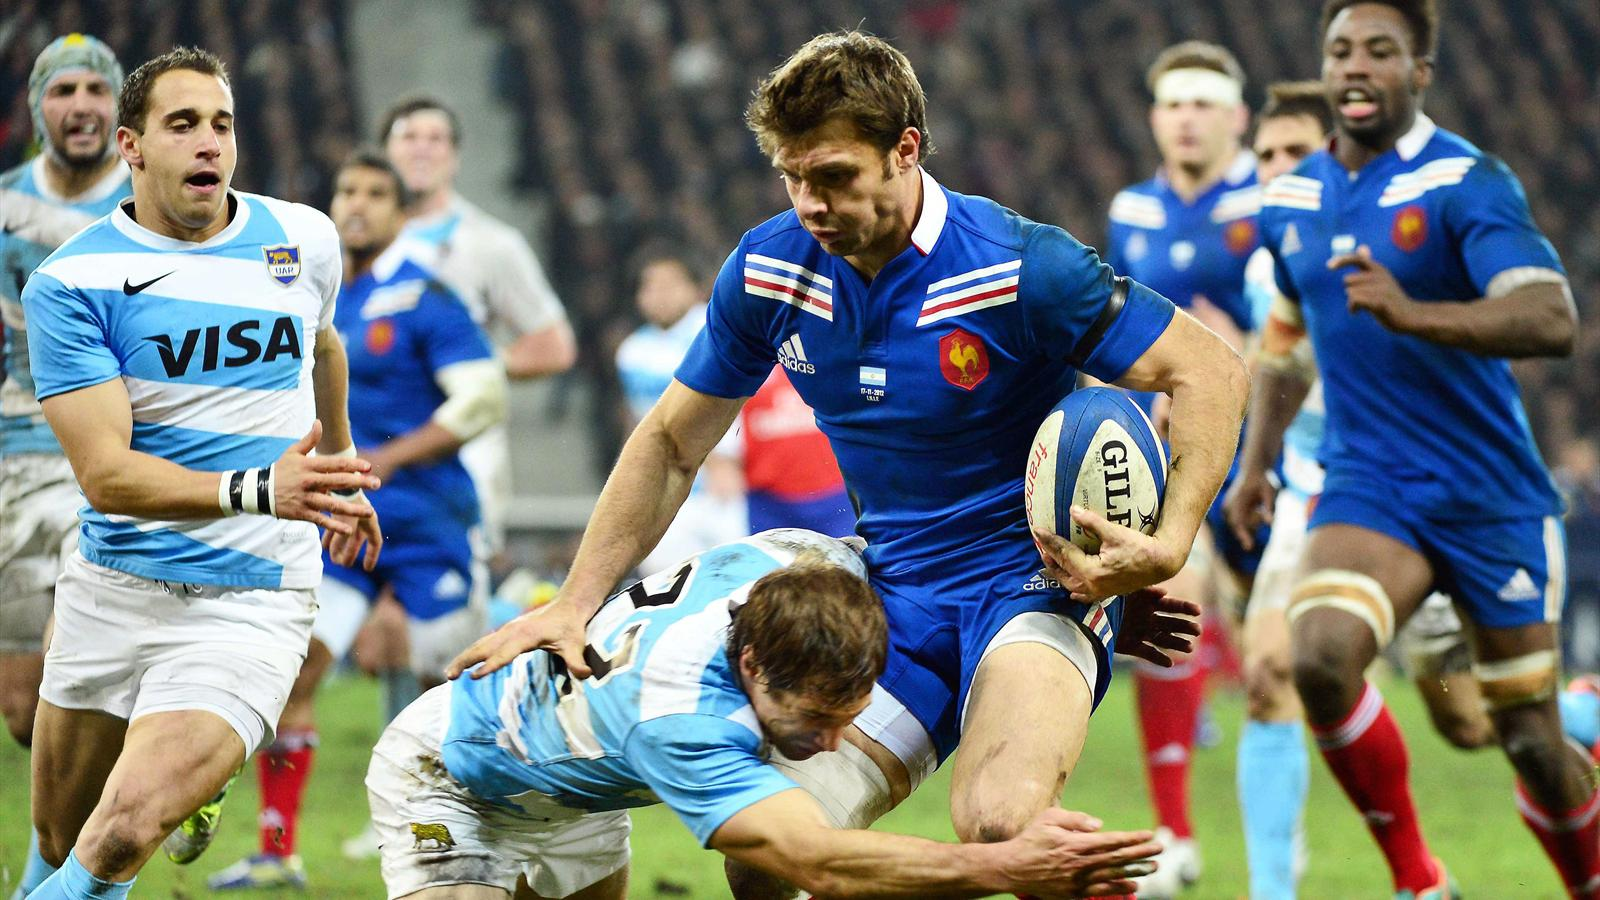 Rugby France vs Argentine en direct live streaming